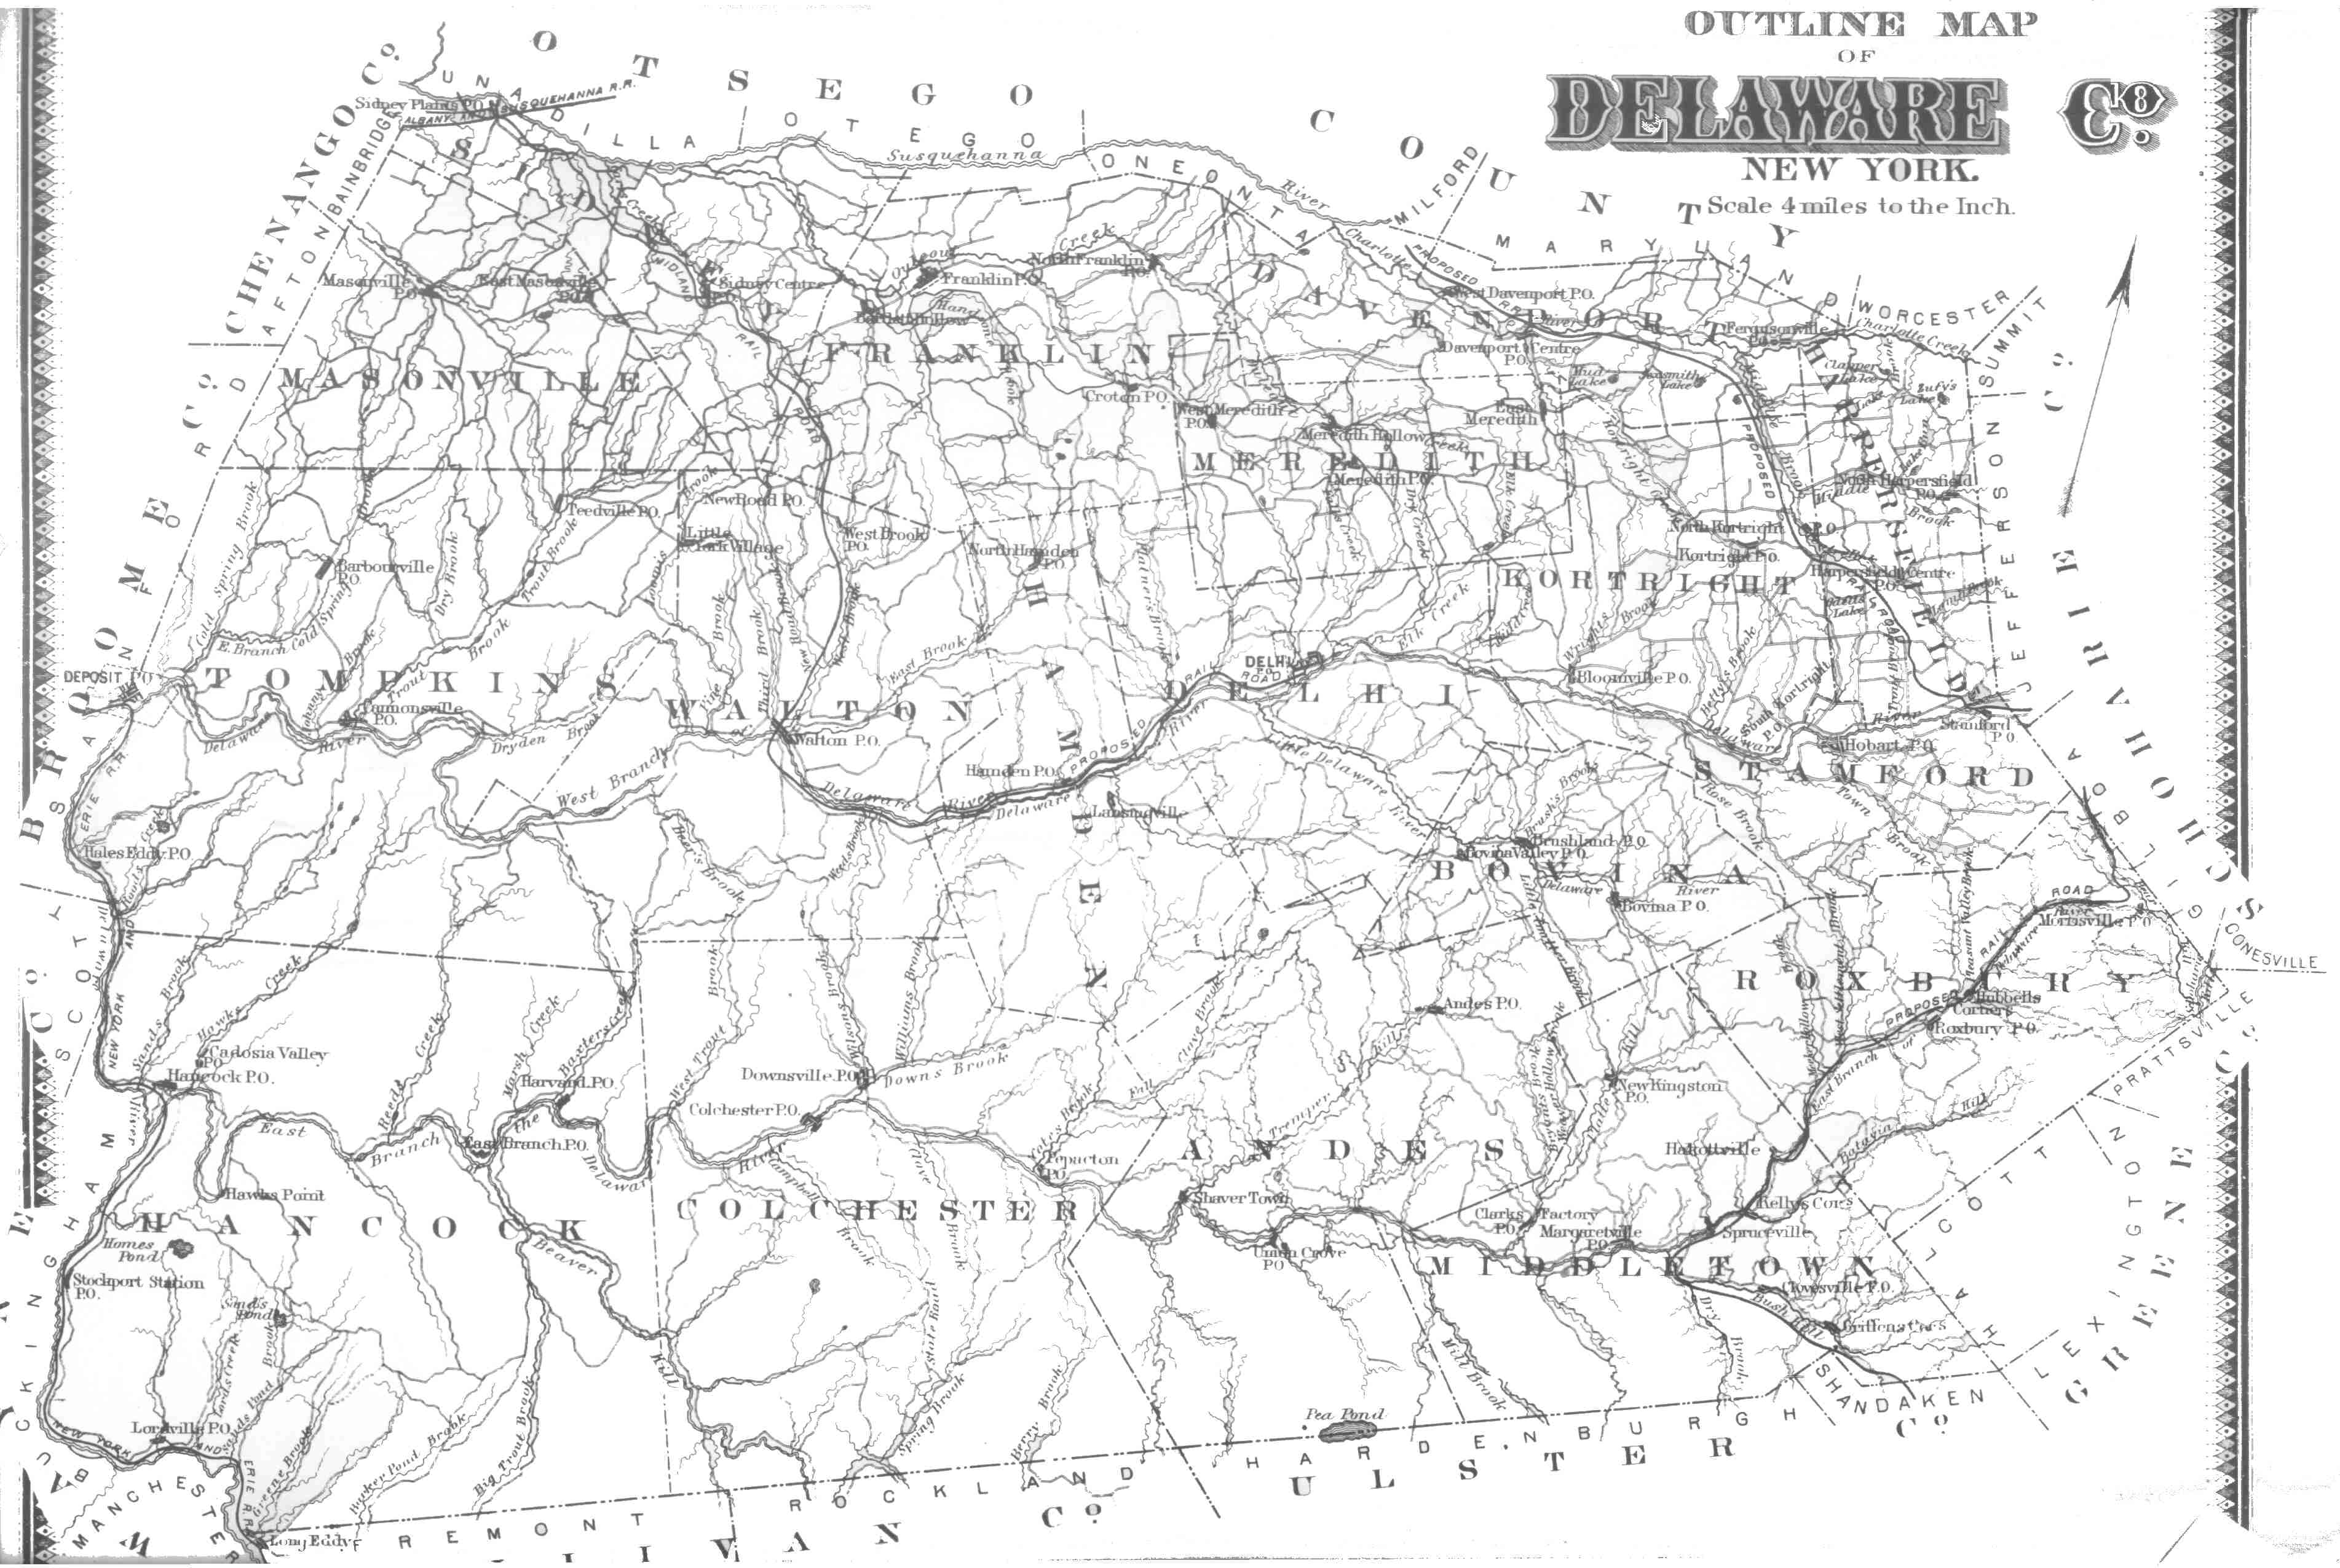 Index To Maps Of Delaware County  Delaware County NY